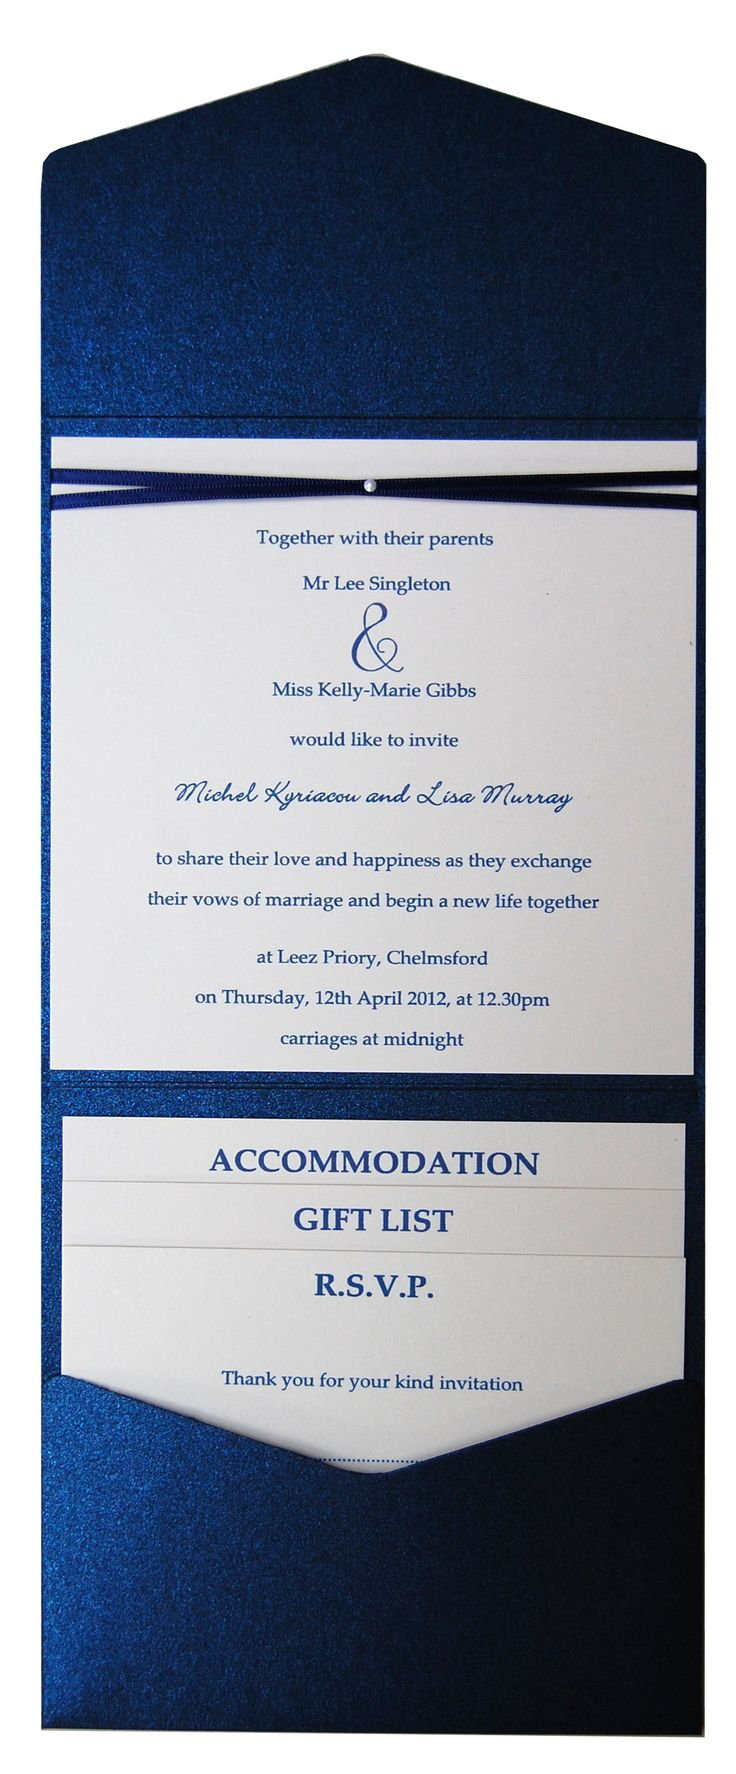 Sapphire blue metallic pocket fold wedding invitation. See the range at www.sew-unique.co.uk